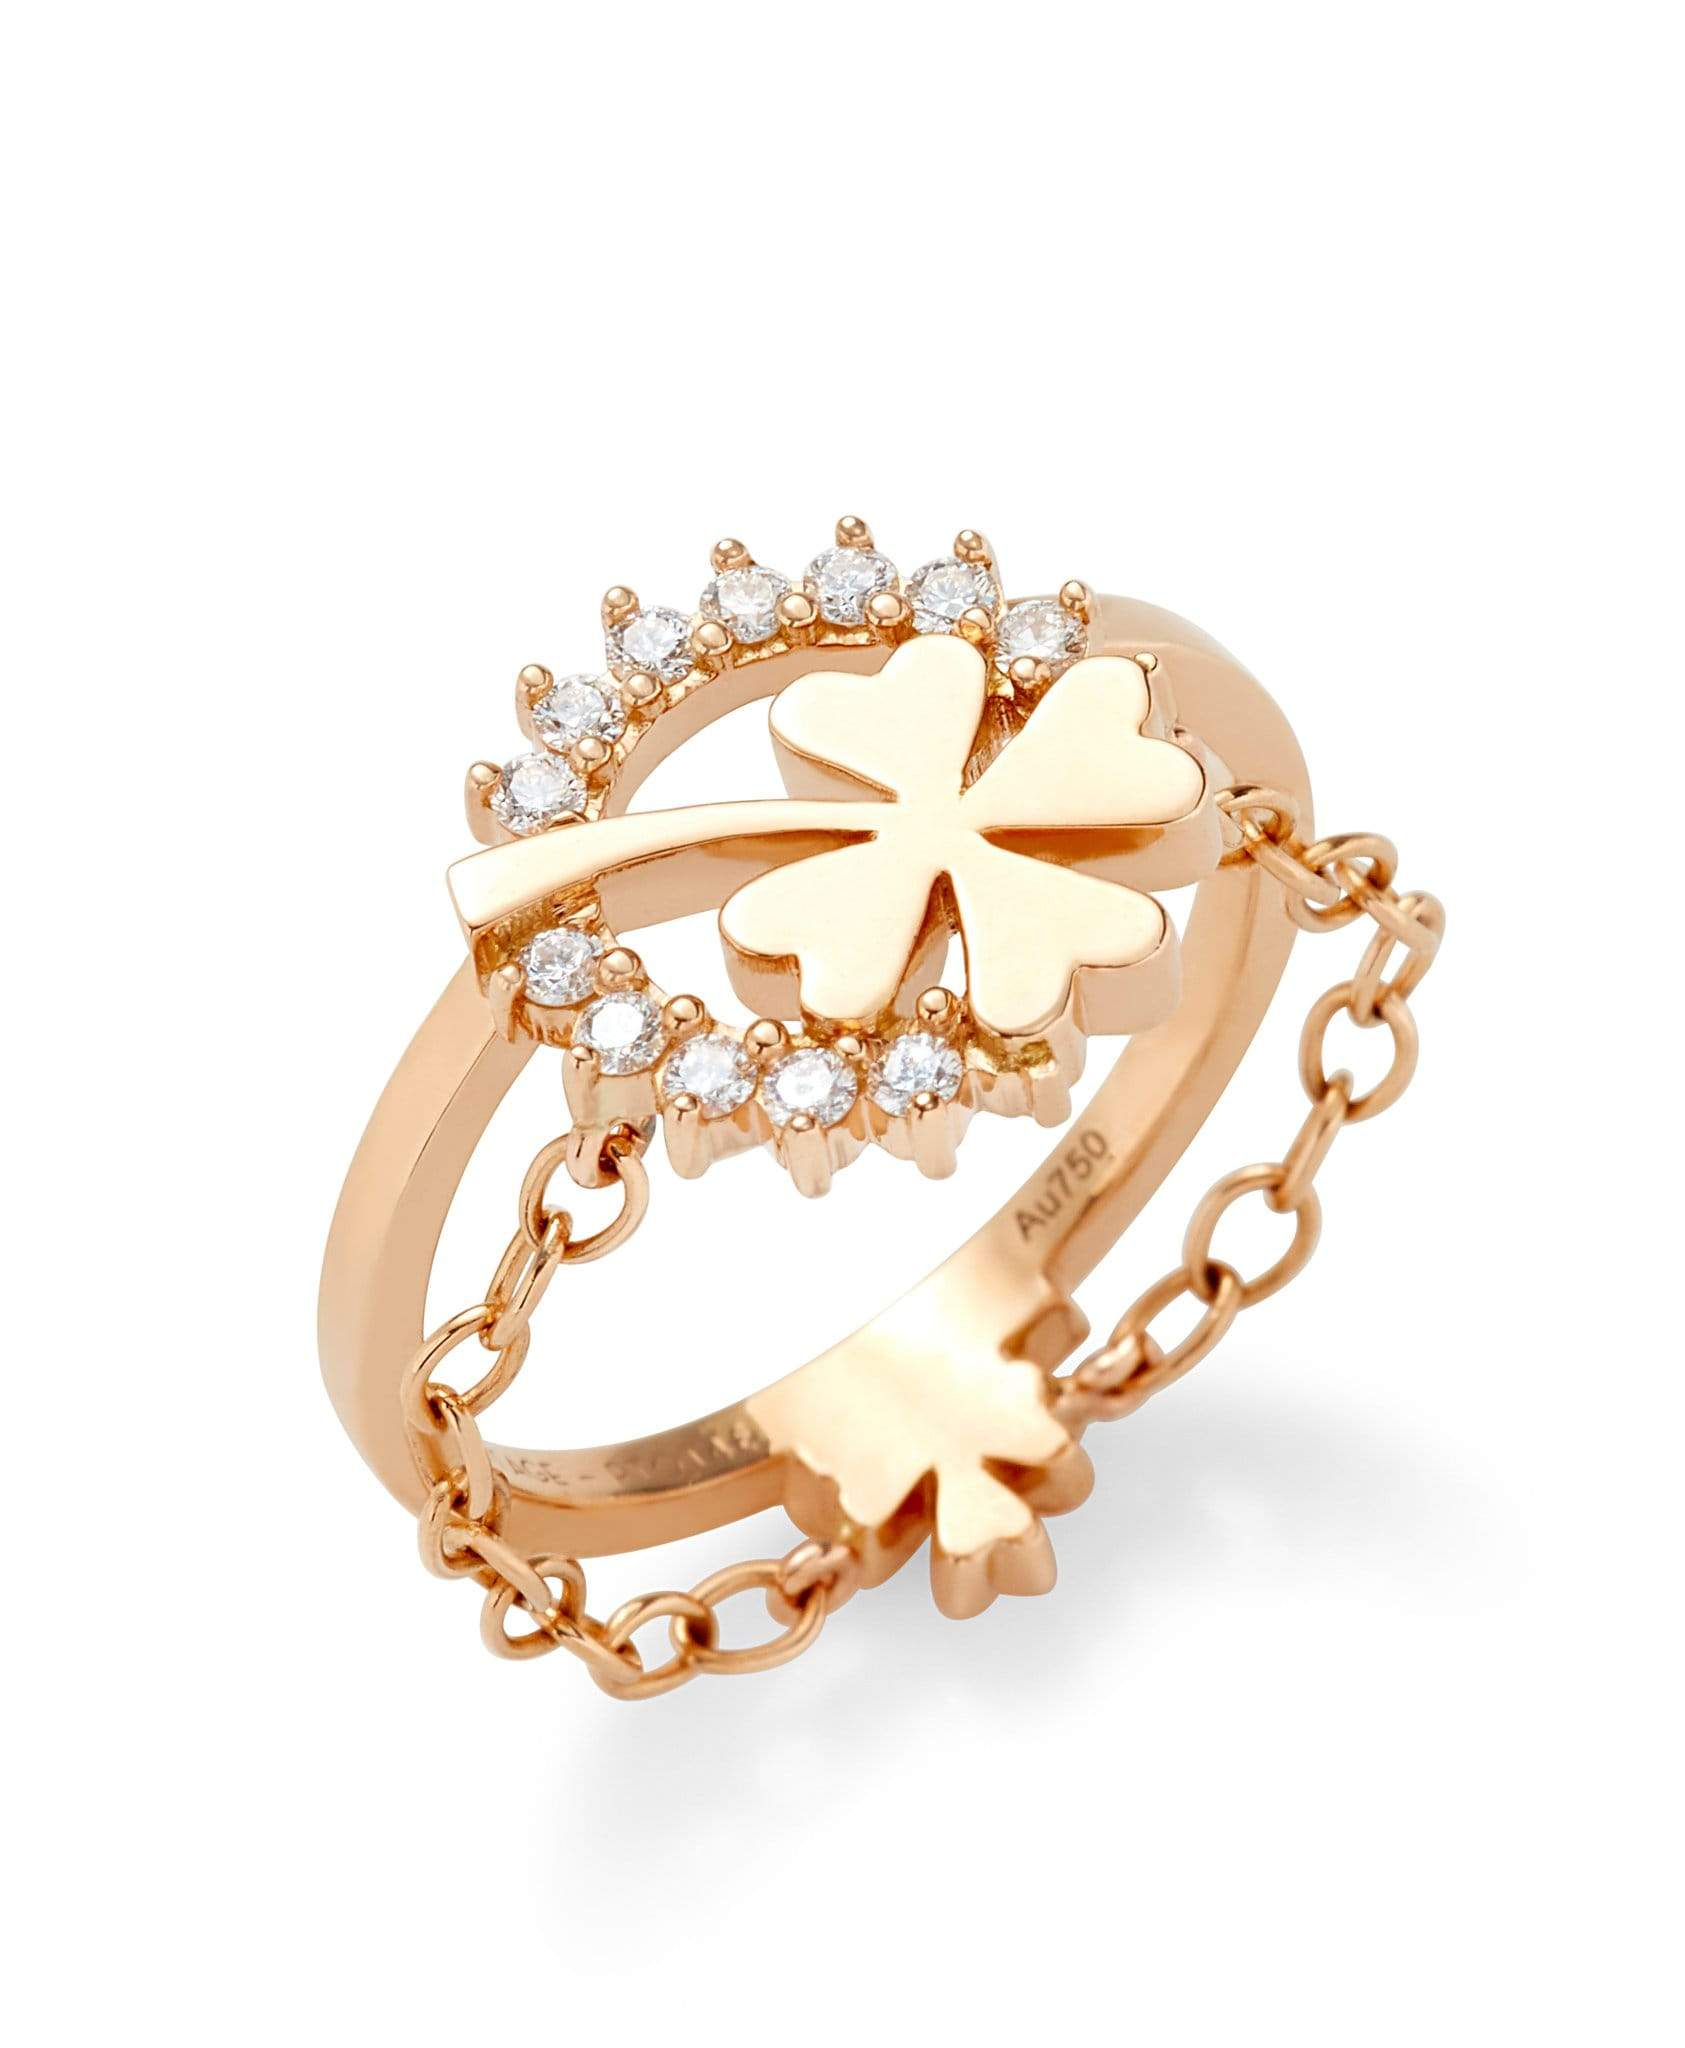 Medium Luck Ring: Discover Luxury Fine Jewelry | Nouvel Heritage || Rose Gold